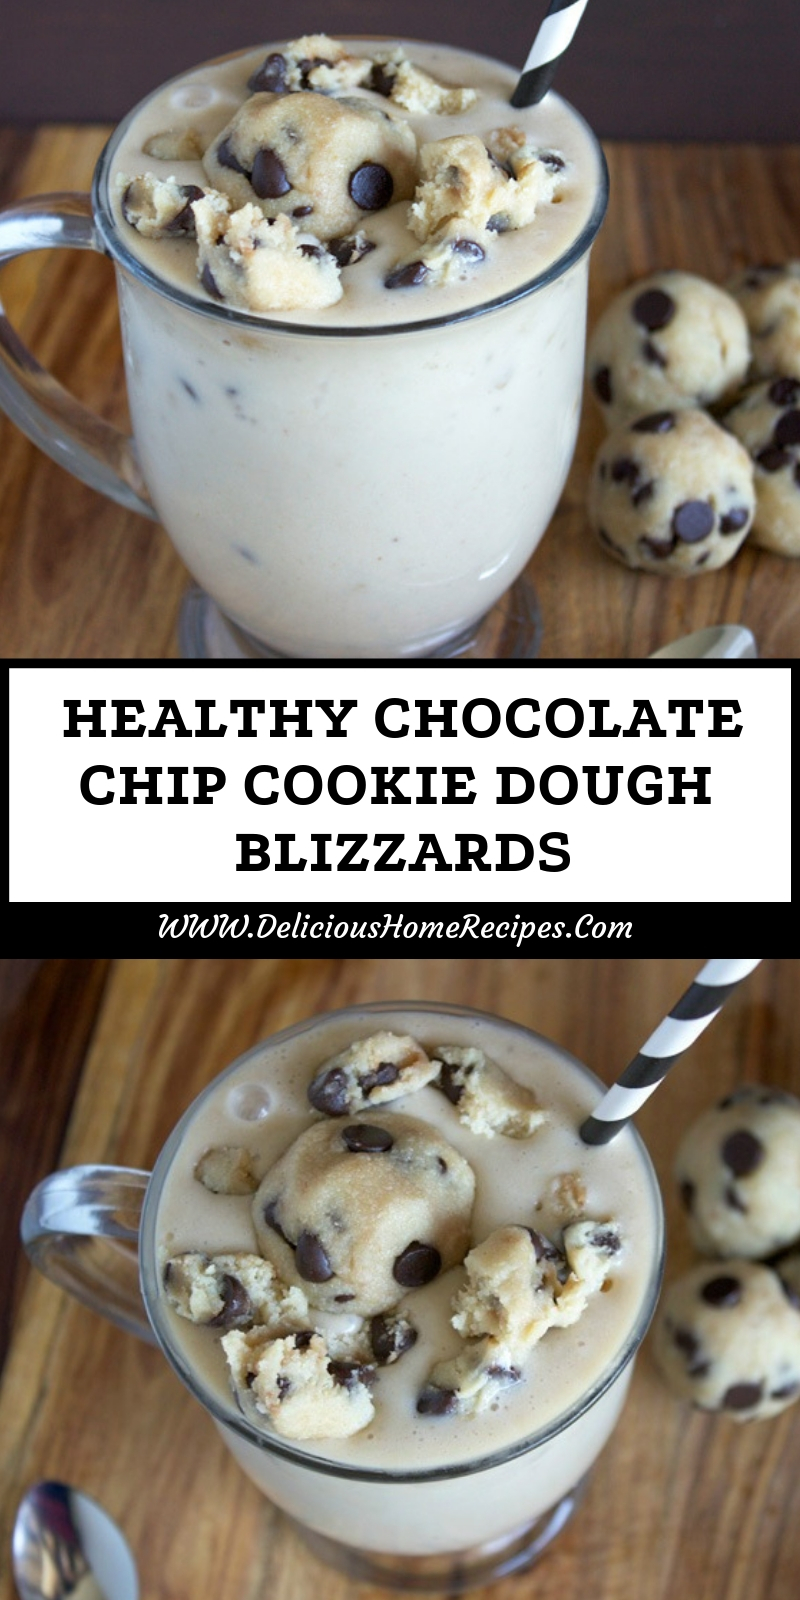 Healthy Chocolate Chip Cookie Dough Blizzards